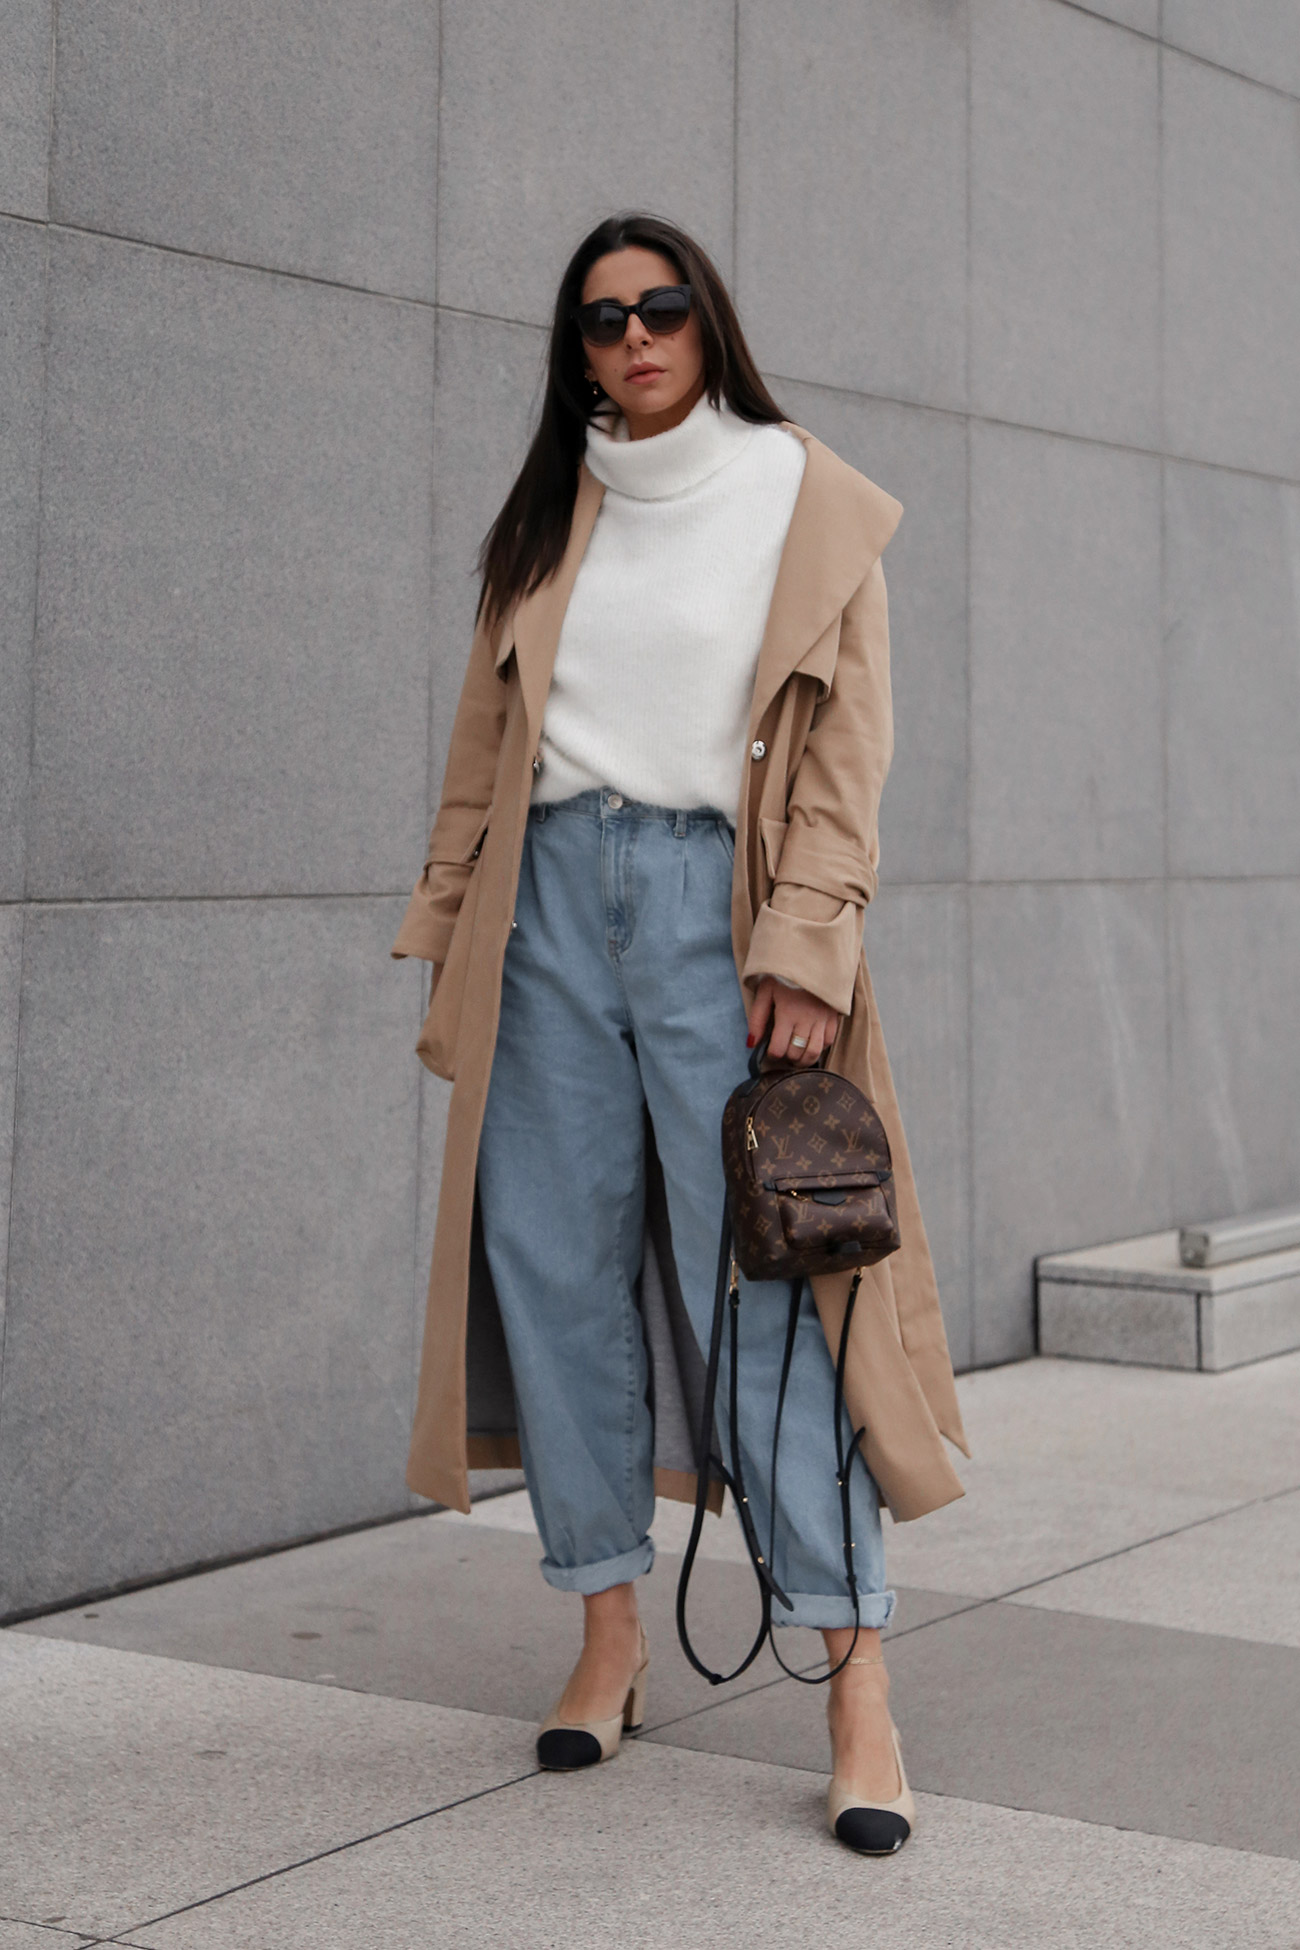 Stella Asteria wearing beige trench coat, jeans, white sweater, Chanel slingback and Louis Vuitton backpack